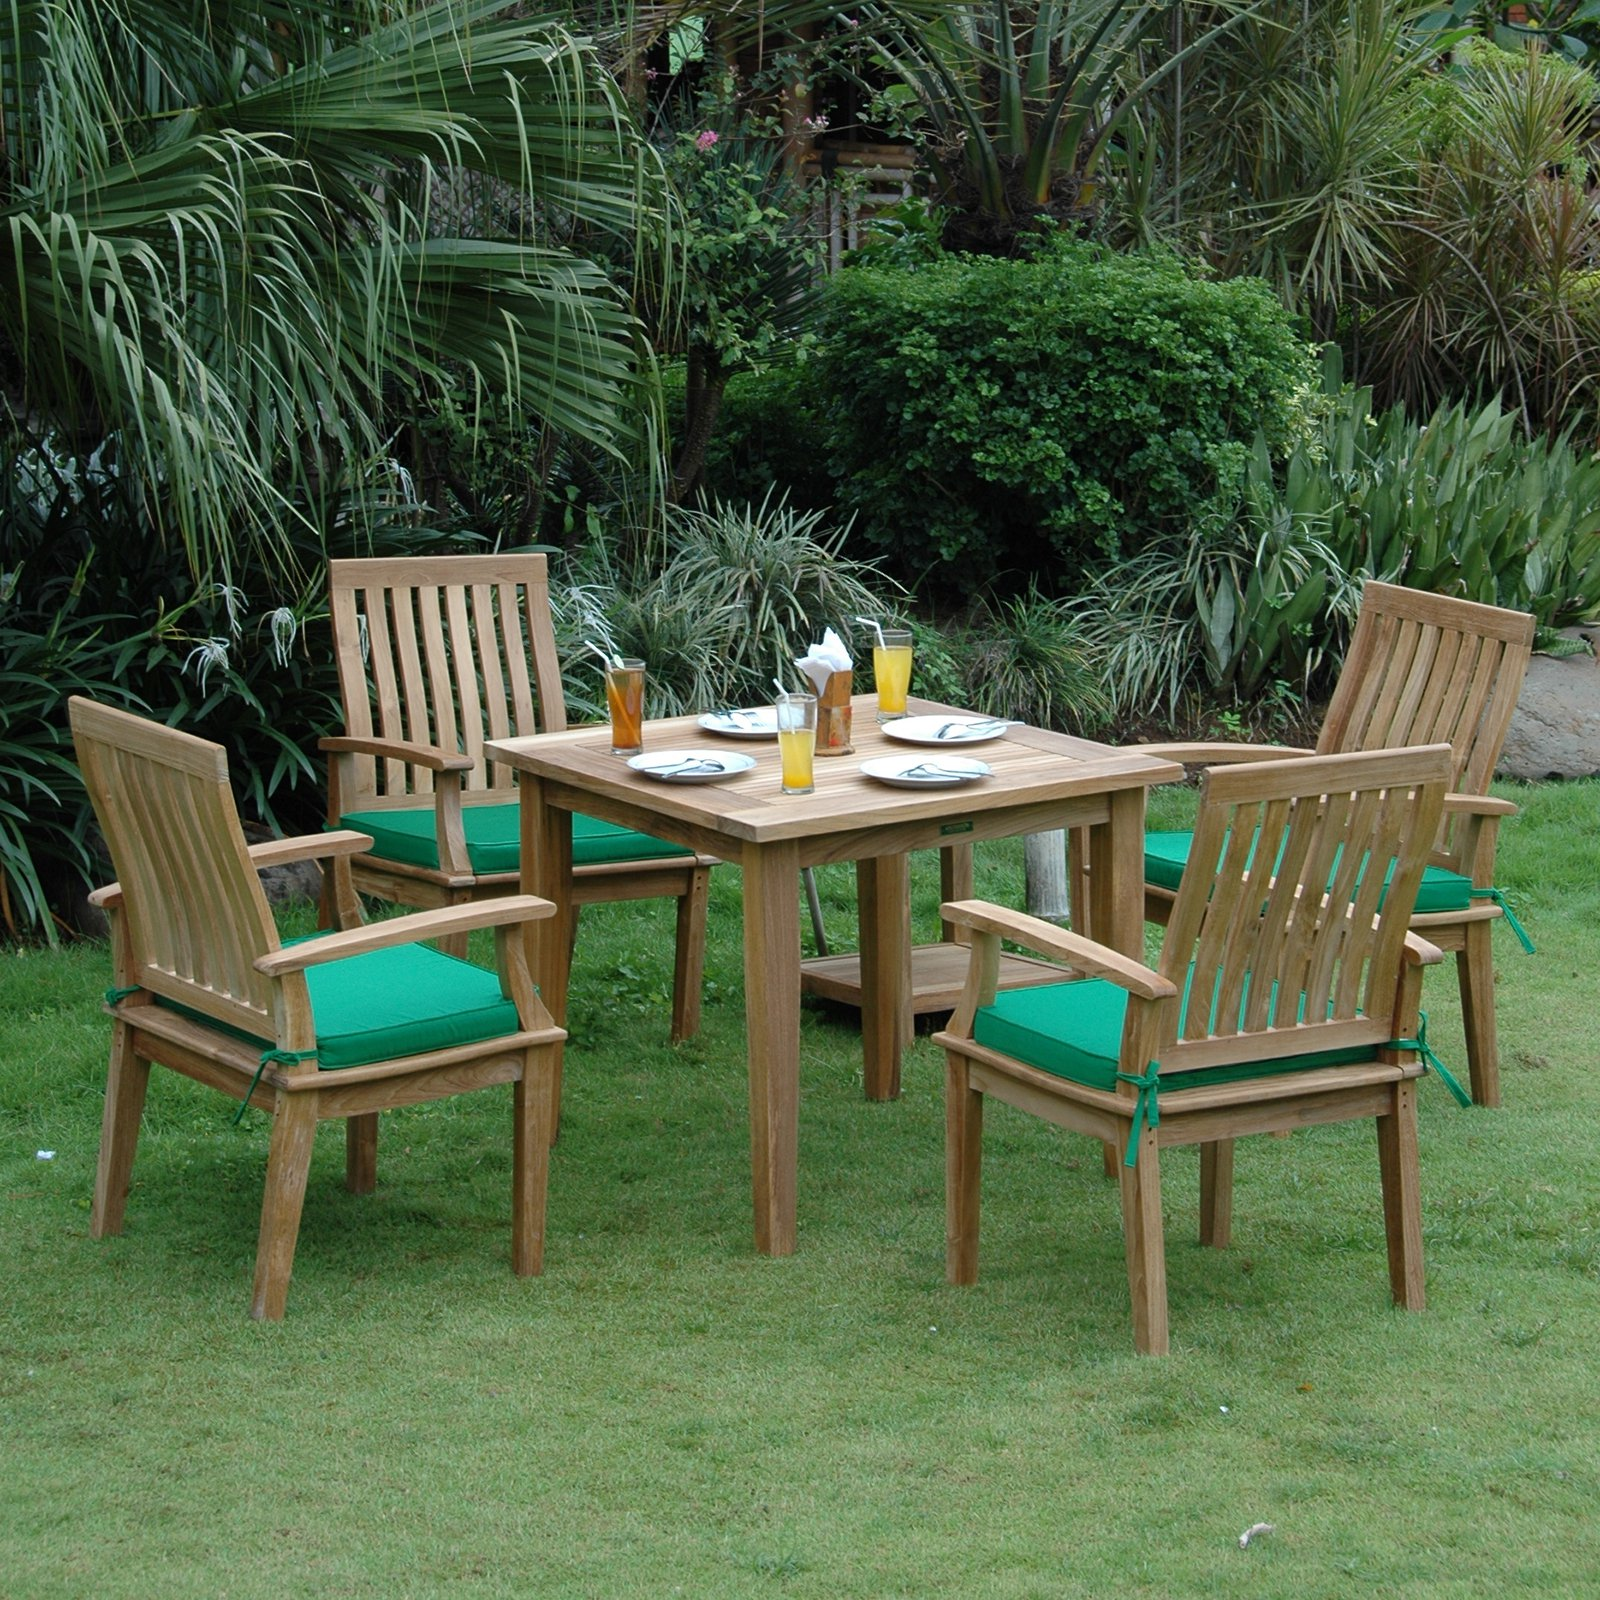 Anderson Teak Brianna 5 Piece Square Patio Dining Room Set by Anderson